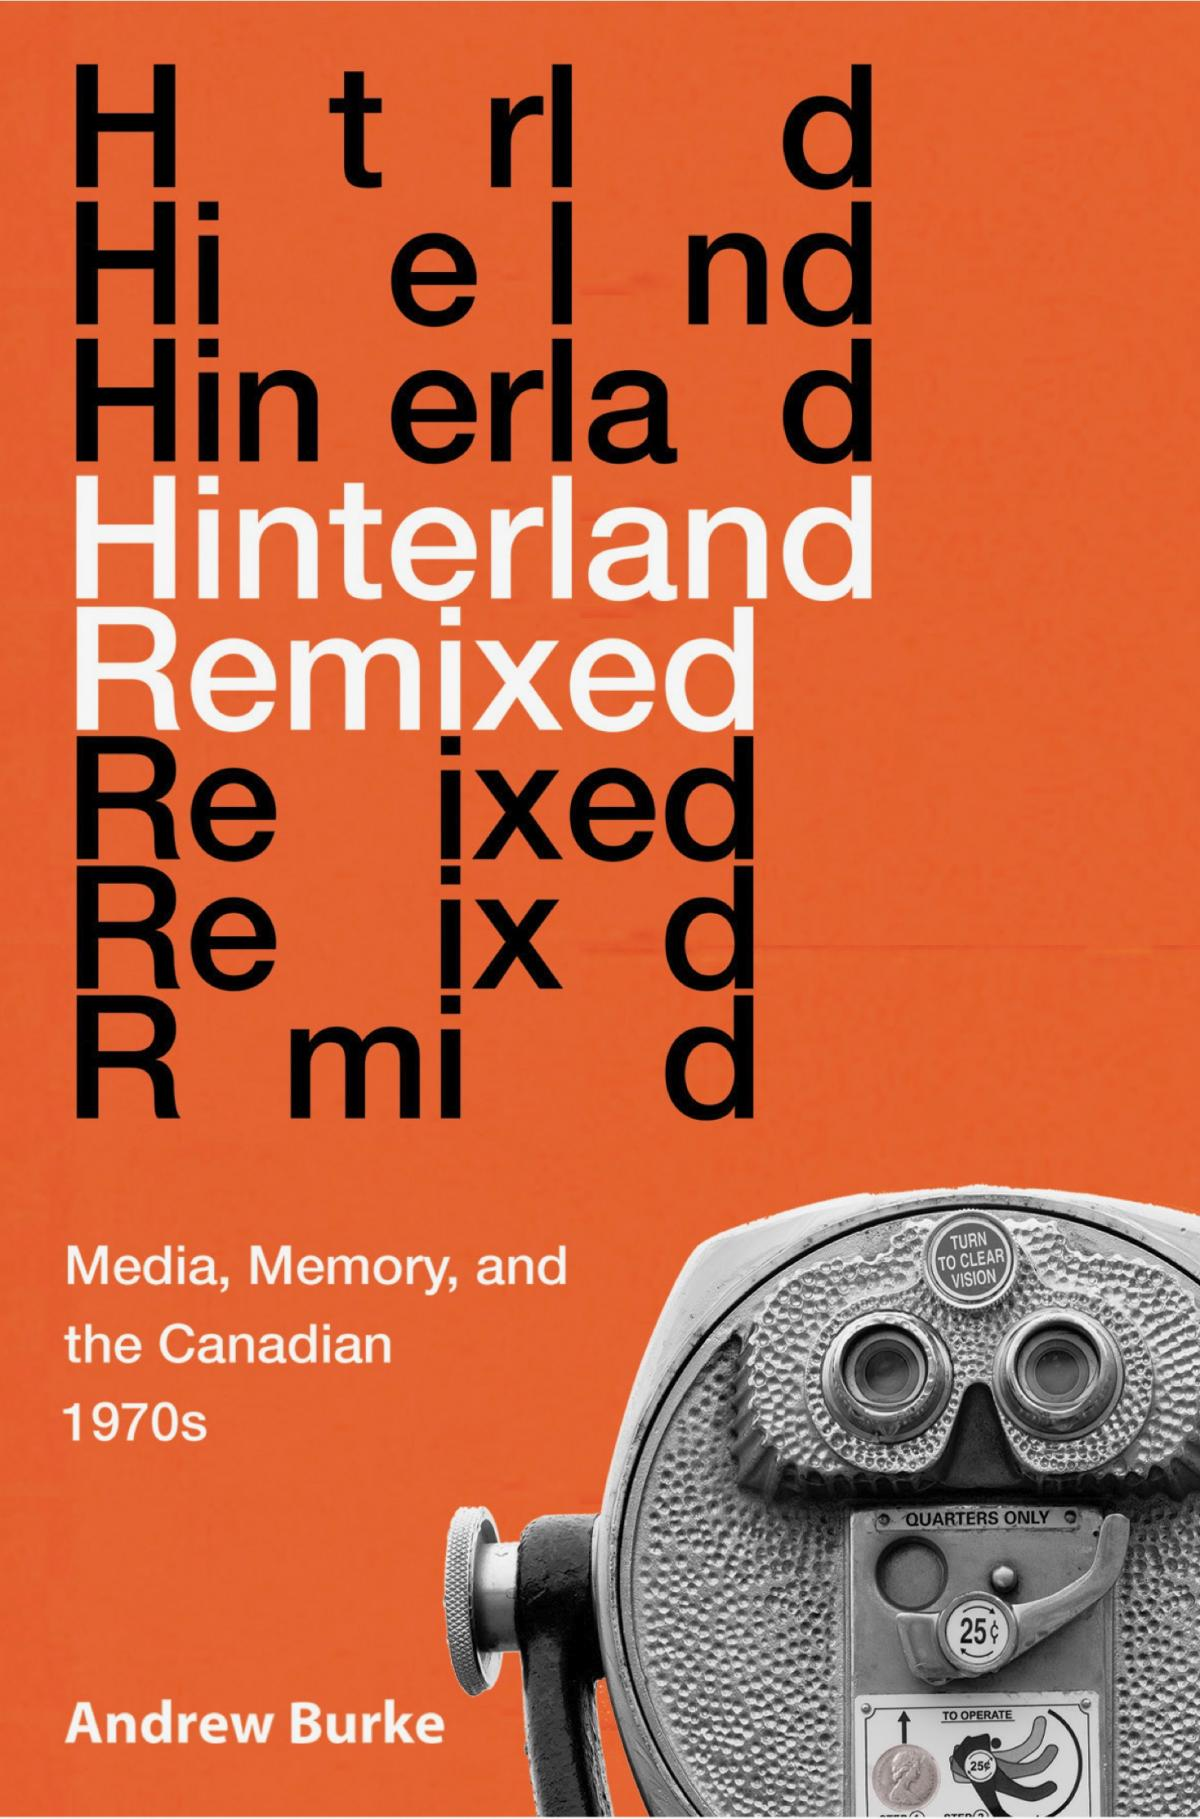 Book cover of Andrew Burke's HINTERLAND REMIXED